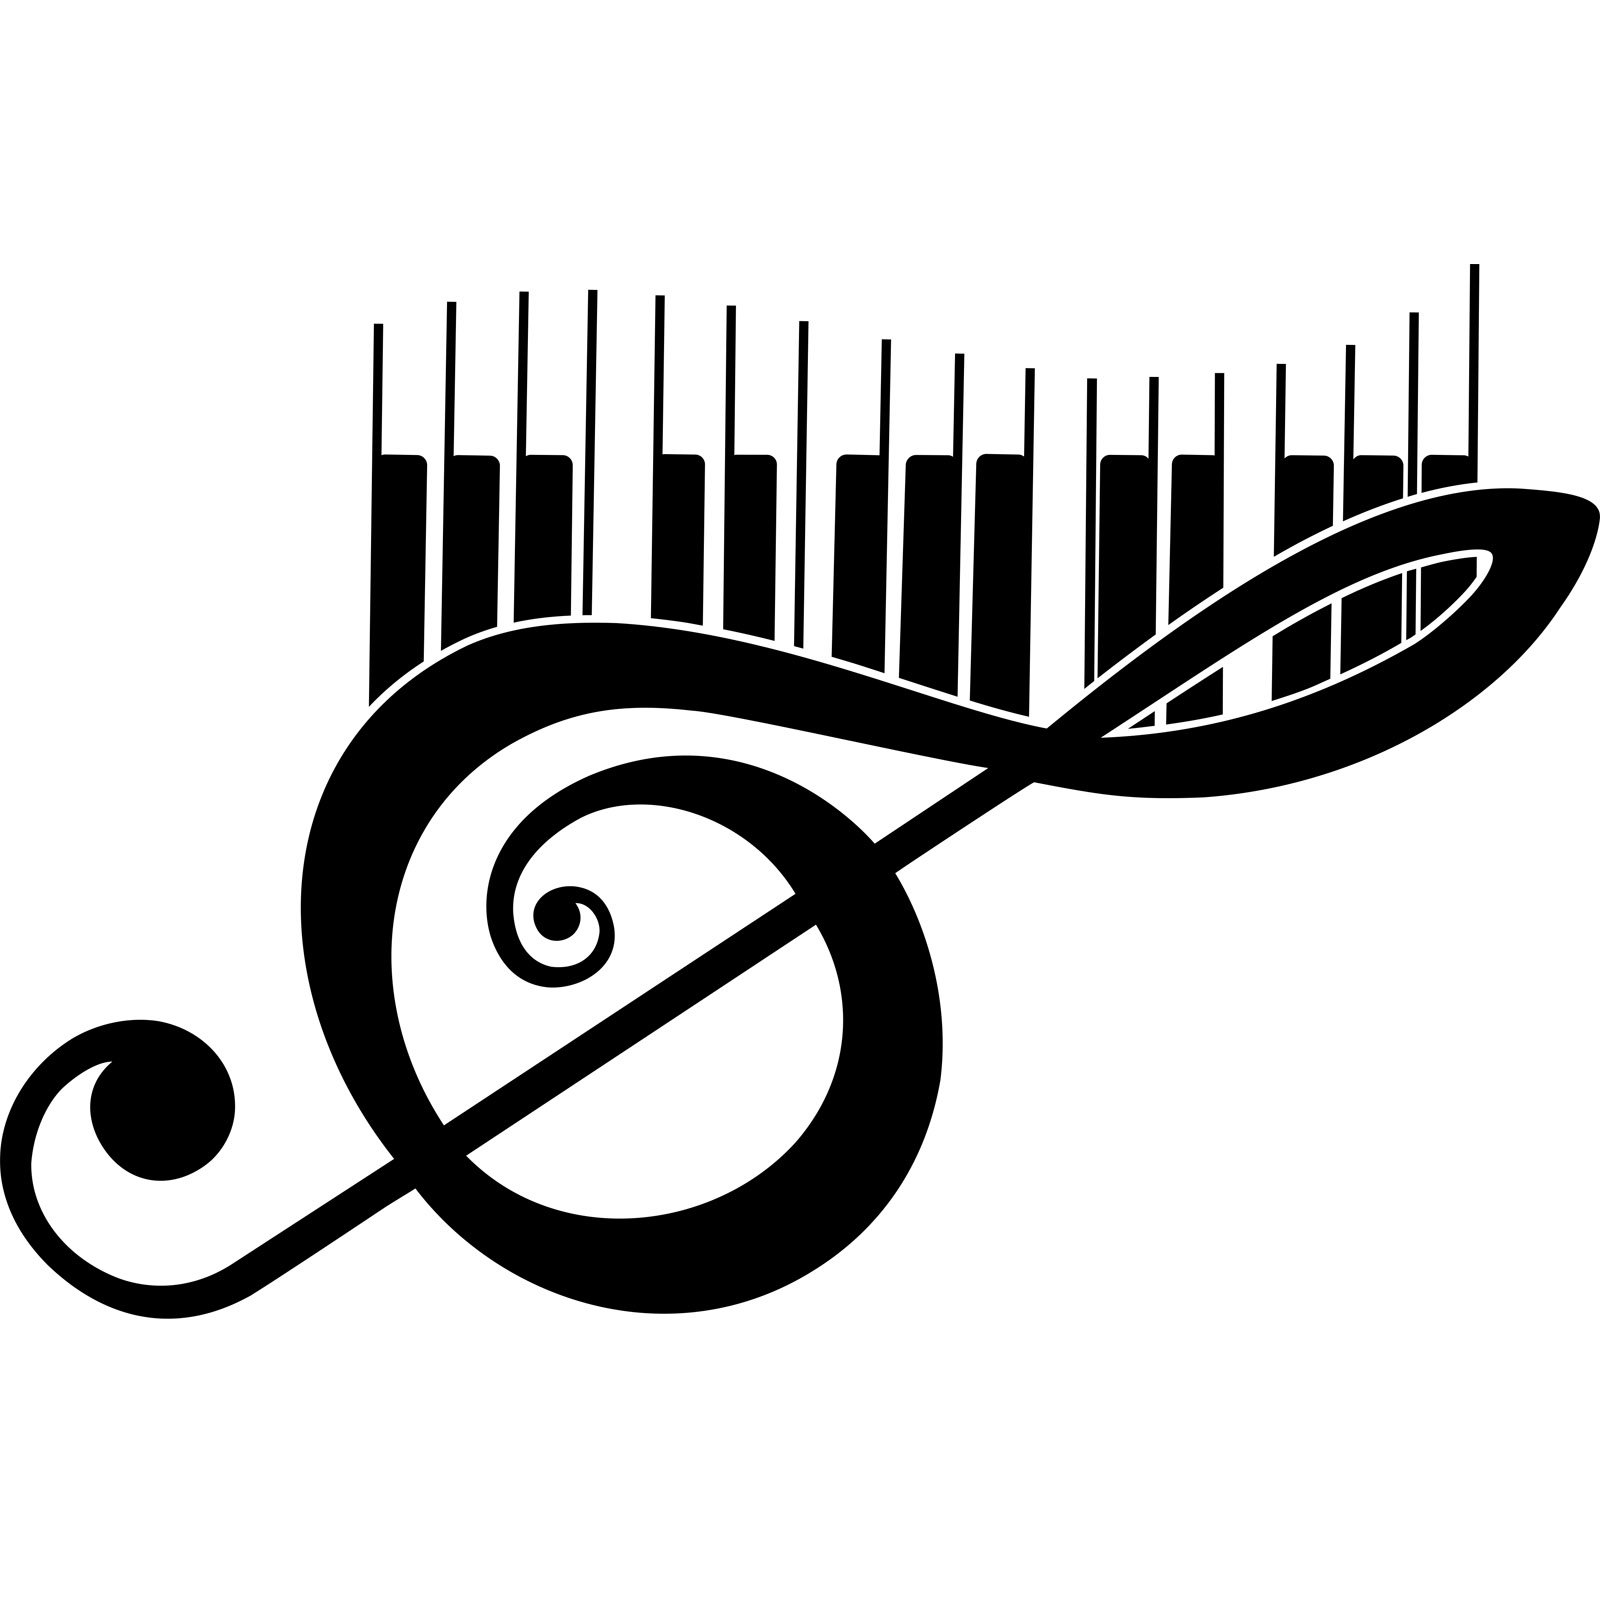 Treble Clef And Piano Keys Musical Wall Sticker